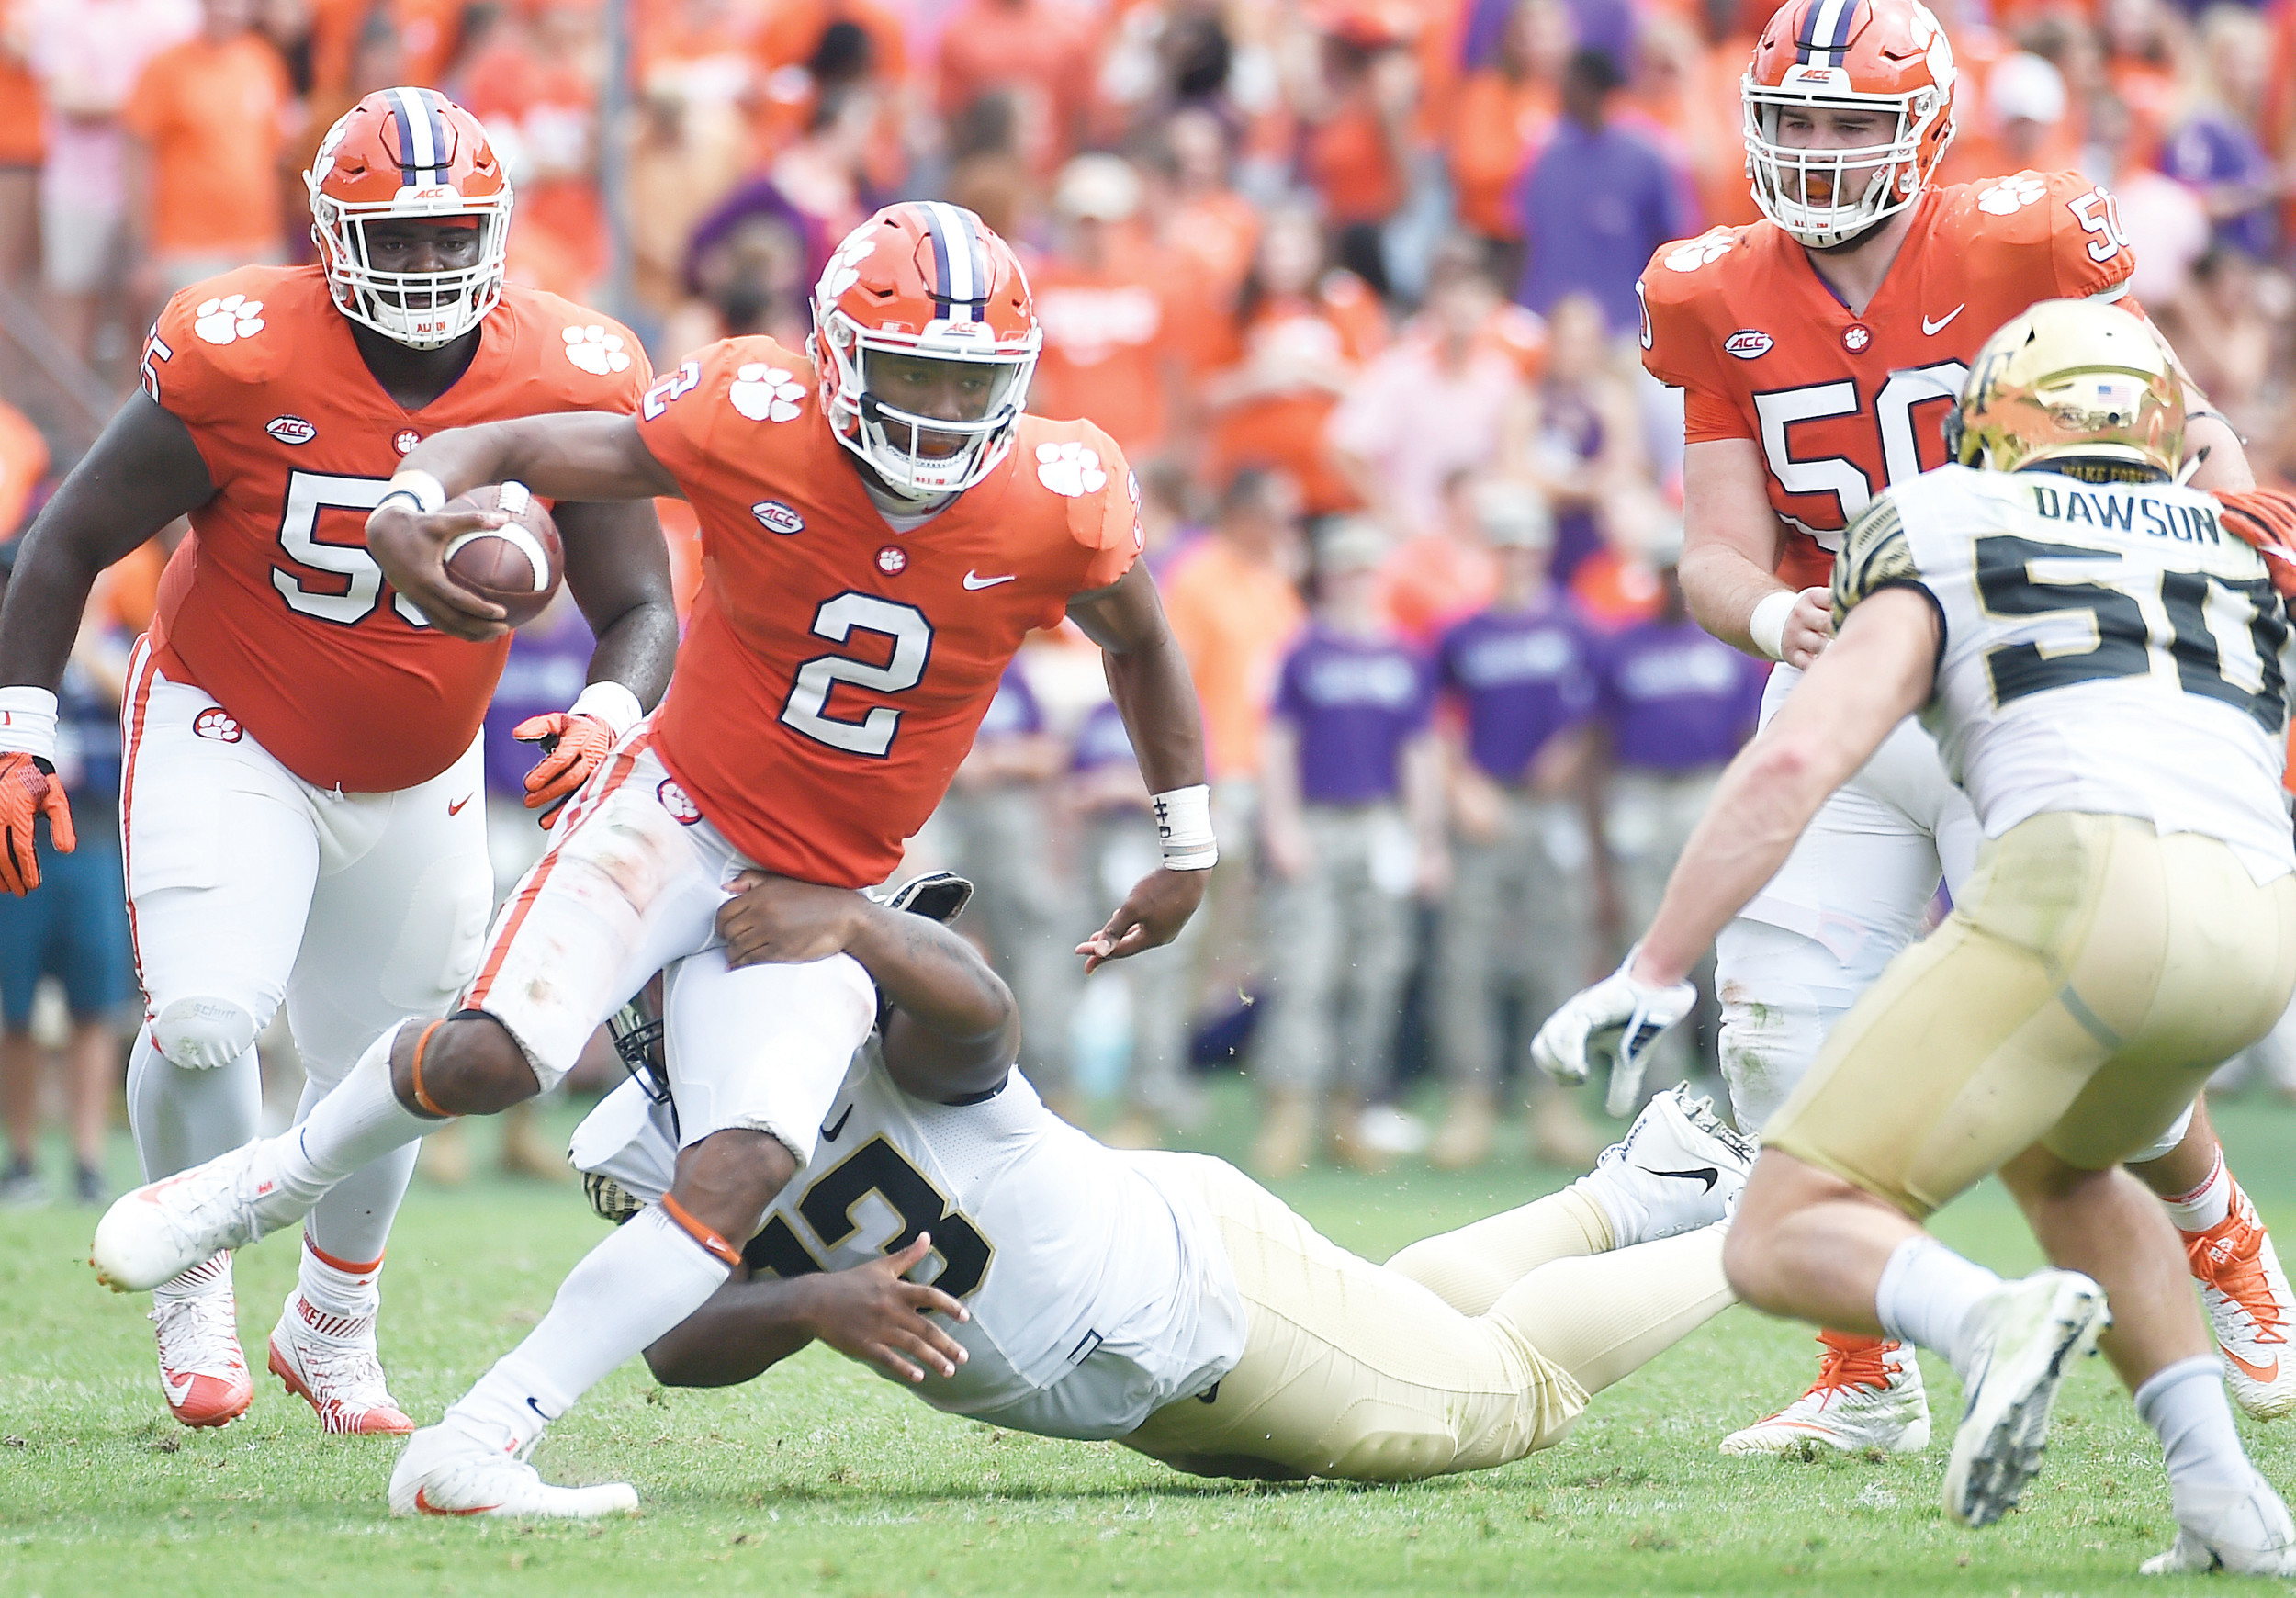 Clemson quarterback Kelly Bryant (2) evades a tackle from Wake Forest defensive lineman Zeek Rodney (93) during the Tigers' 28-14 victory on Saturday at Memorial Stadium in Clemson. Bryant was injured later in the game as his status for Friday's matchup at Syracuse is unknown.